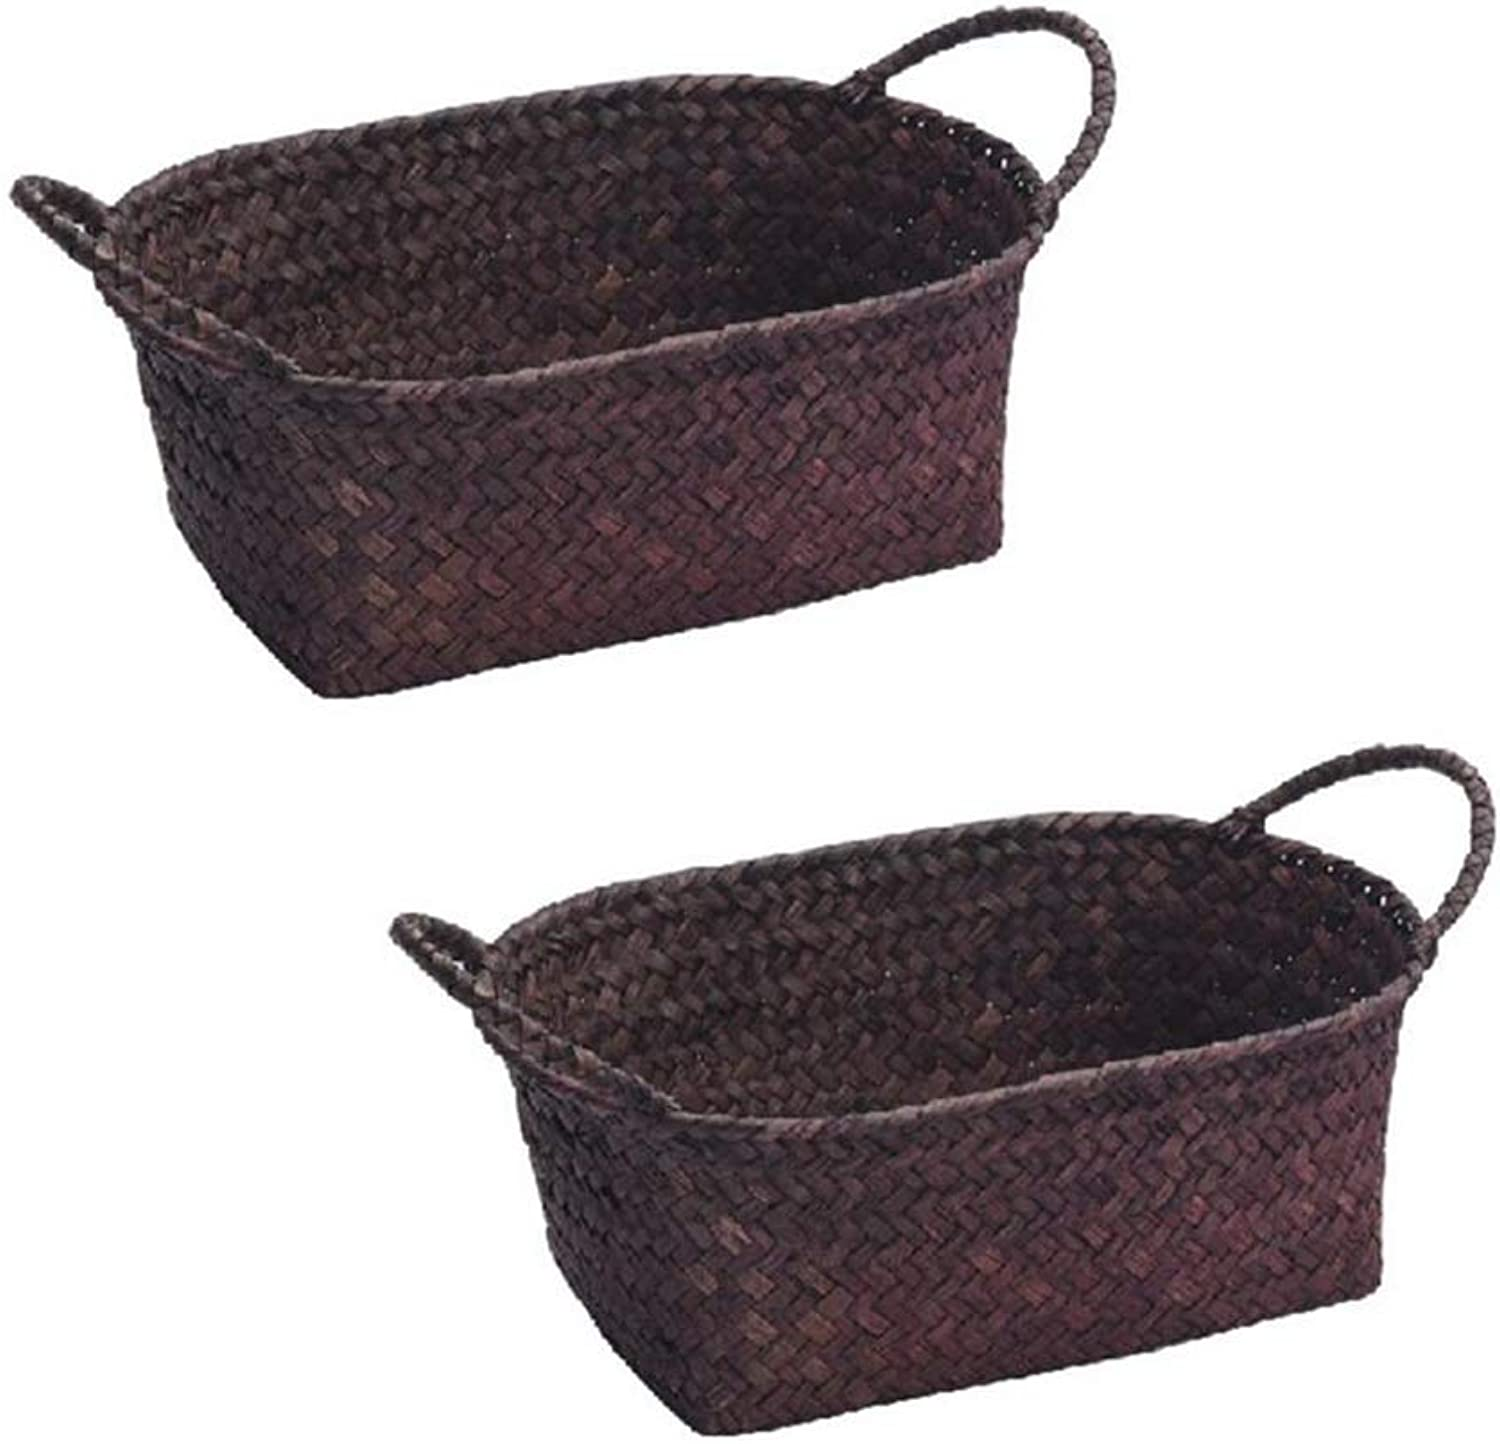 MUMA Storage Basket Handicraft Woven with Handle Durable Sundries Snack Desktop Organizer Container (color   Coffee color, Size   28x18x9cm)